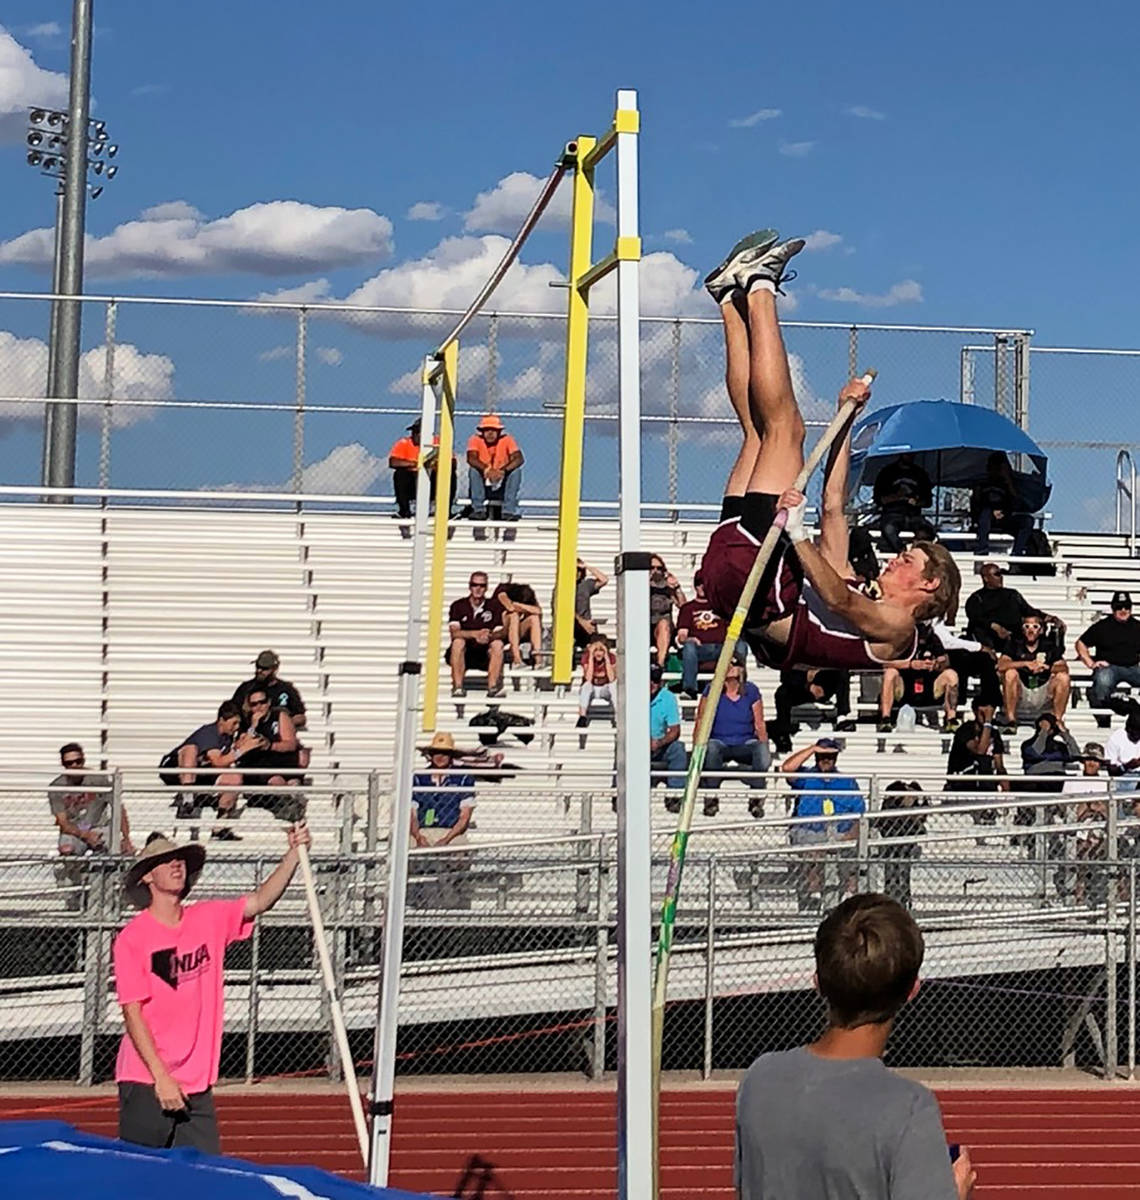 Tom Rysinski/Pahrump Valley Times file Grant Odegard competes in the pole vault during the 2019 ...